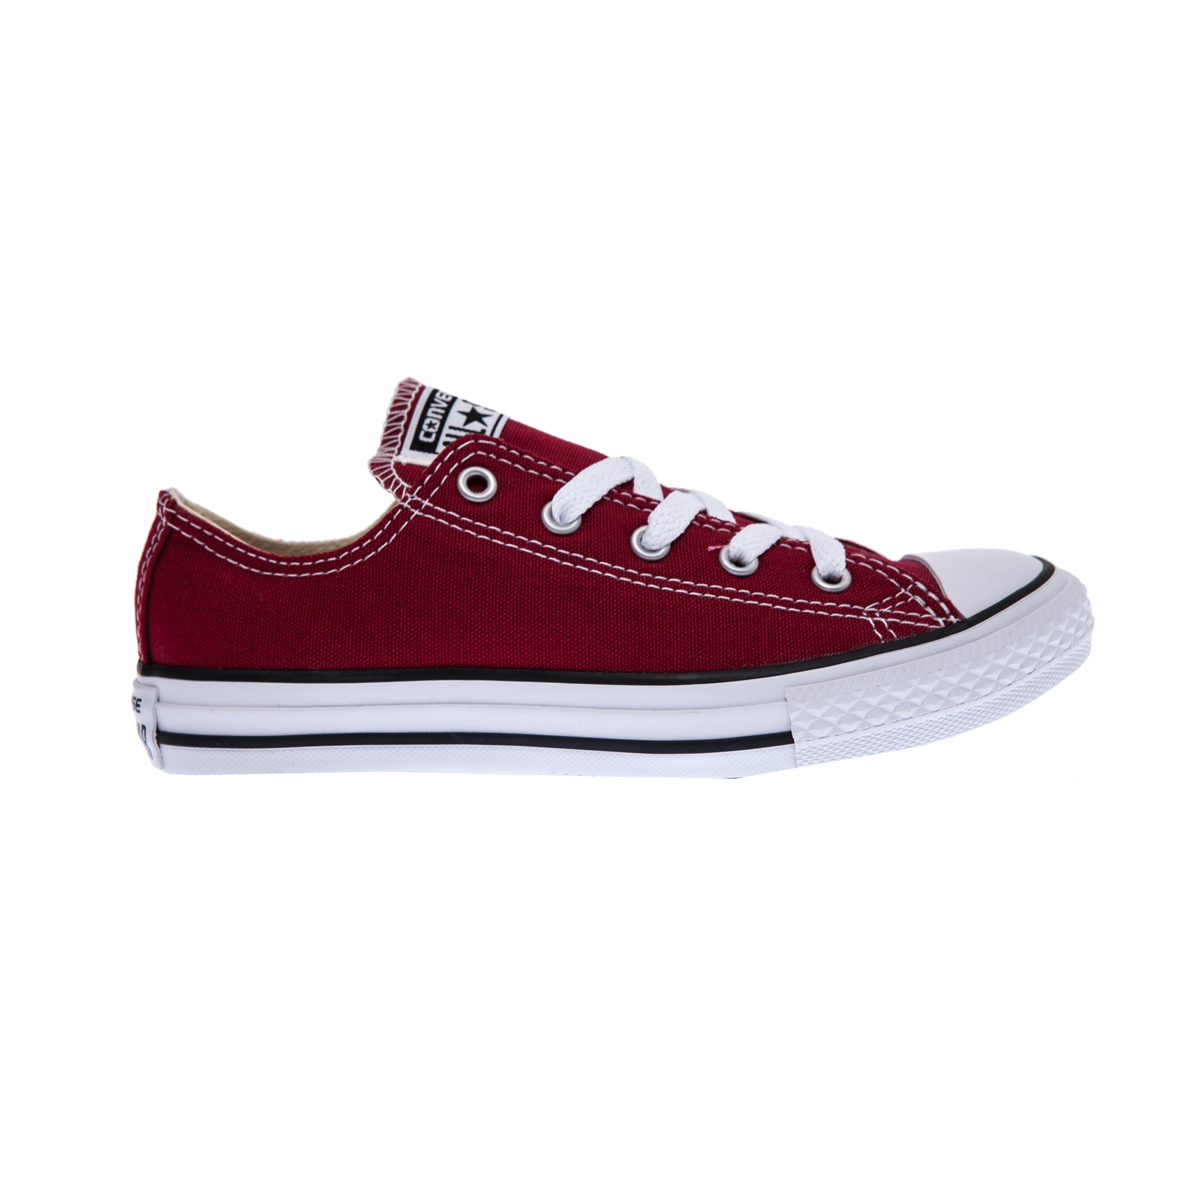 CONVERSE – Παιδικά παπούτσια Chuck Taylor μπορντώ